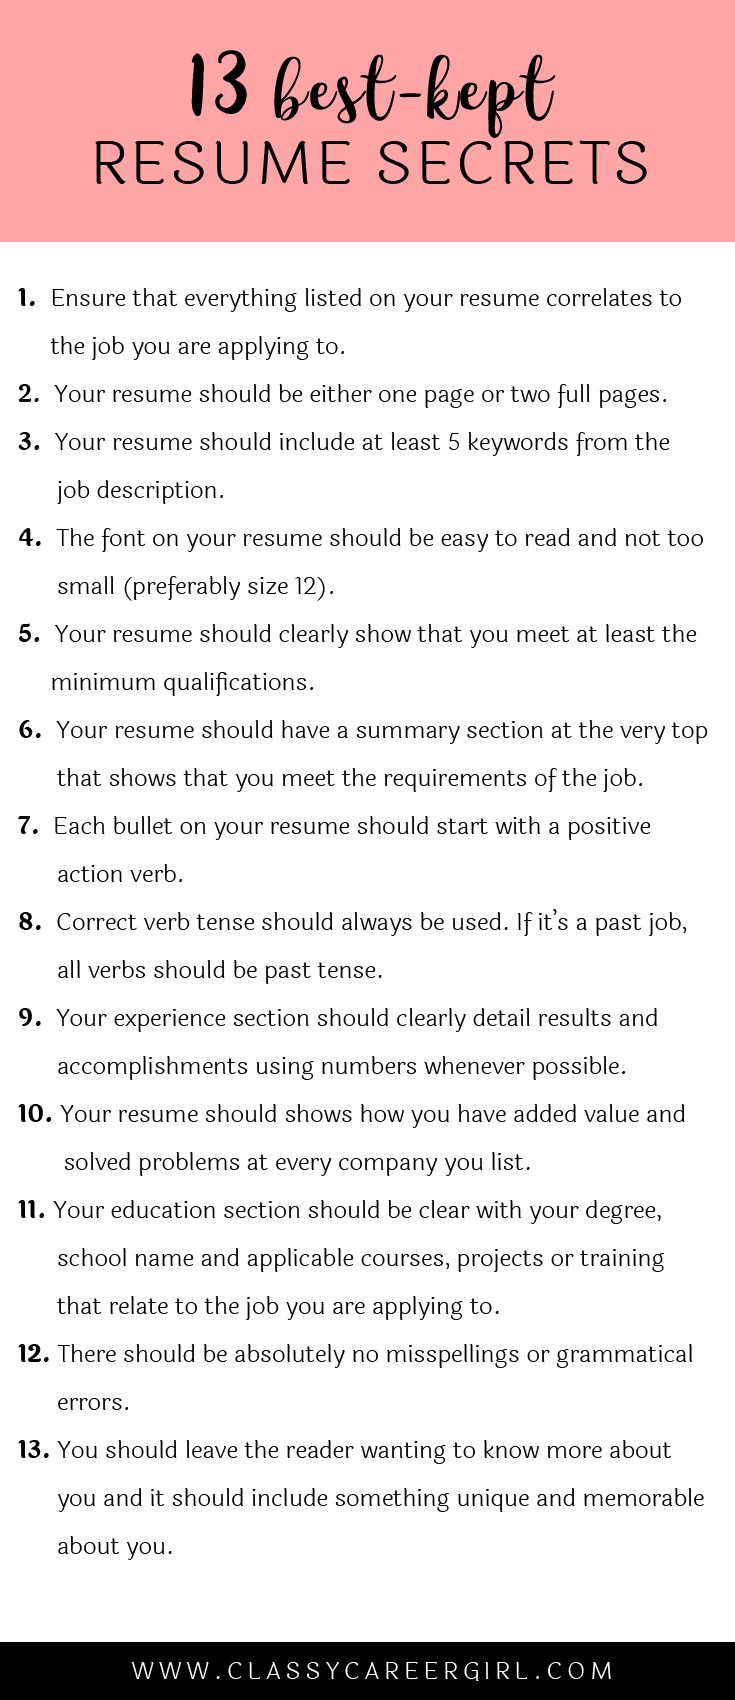 Opposenewapstandardsus  Mesmerizing  Ideas About Resume On Pinterest  Cv Format Resume Cv And  With Great Some Hiring Managers Will Toss Your Resume Out If You Dont Know These  With Cute Openoffice Resume Template Also Simple Resume Template Free In Addition Commercial Real Estate Resume And Theatre Resume Examples As Well As Electrician Helper Resume Additionally Picture Of Resume From Pinterestcom With Opposenewapstandardsus  Great  Ideas About Resume On Pinterest  Cv Format Resume Cv And  With Cute Some Hiring Managers Will Toss Your Resume Out If You Dont Know These  And Mesmerizing Openoffice Resume Template Also Simple Resume Template Free In Addition Commercial Real Estate Resume From Pinterestcom